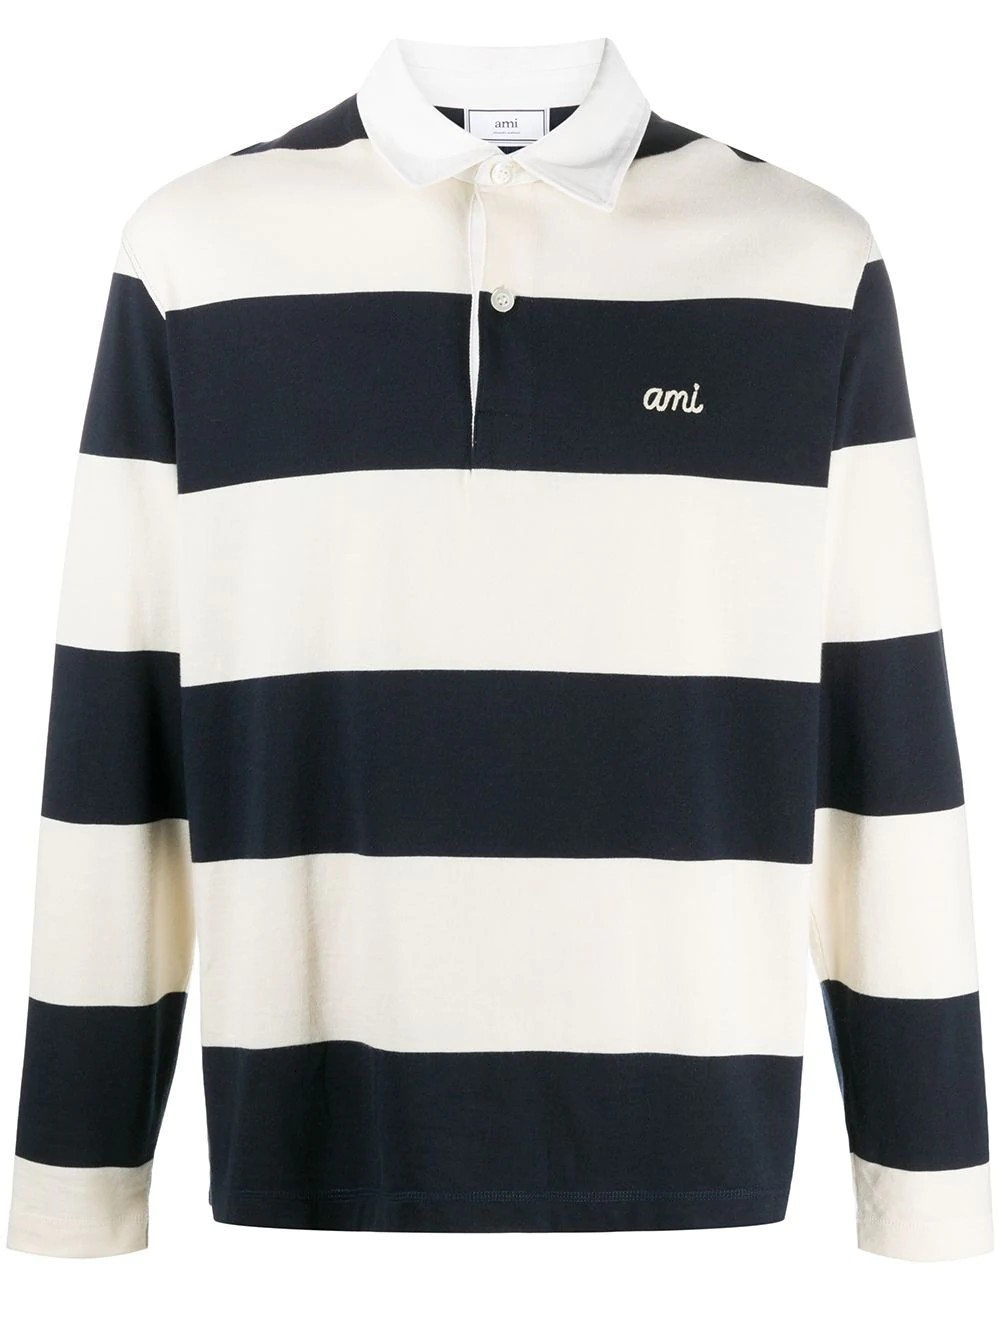 1ST DELIVERY POLO RAYURES RUGBY